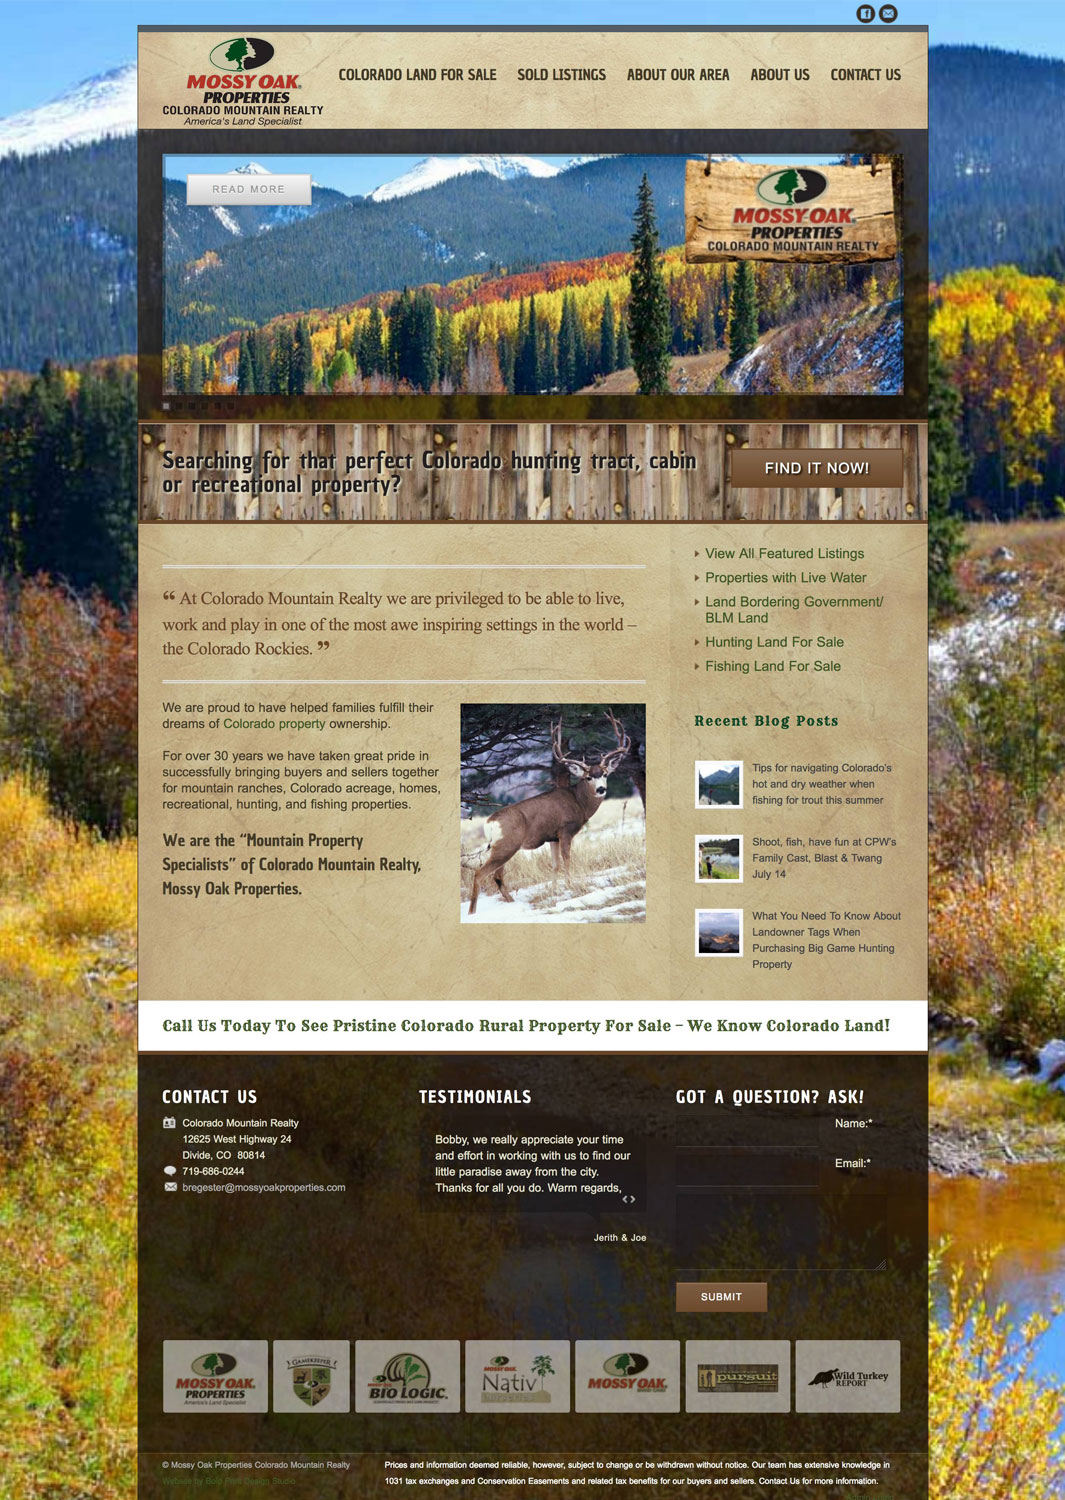 Mossy Oak Properties Colorado Mountain Realty Real Estate Website